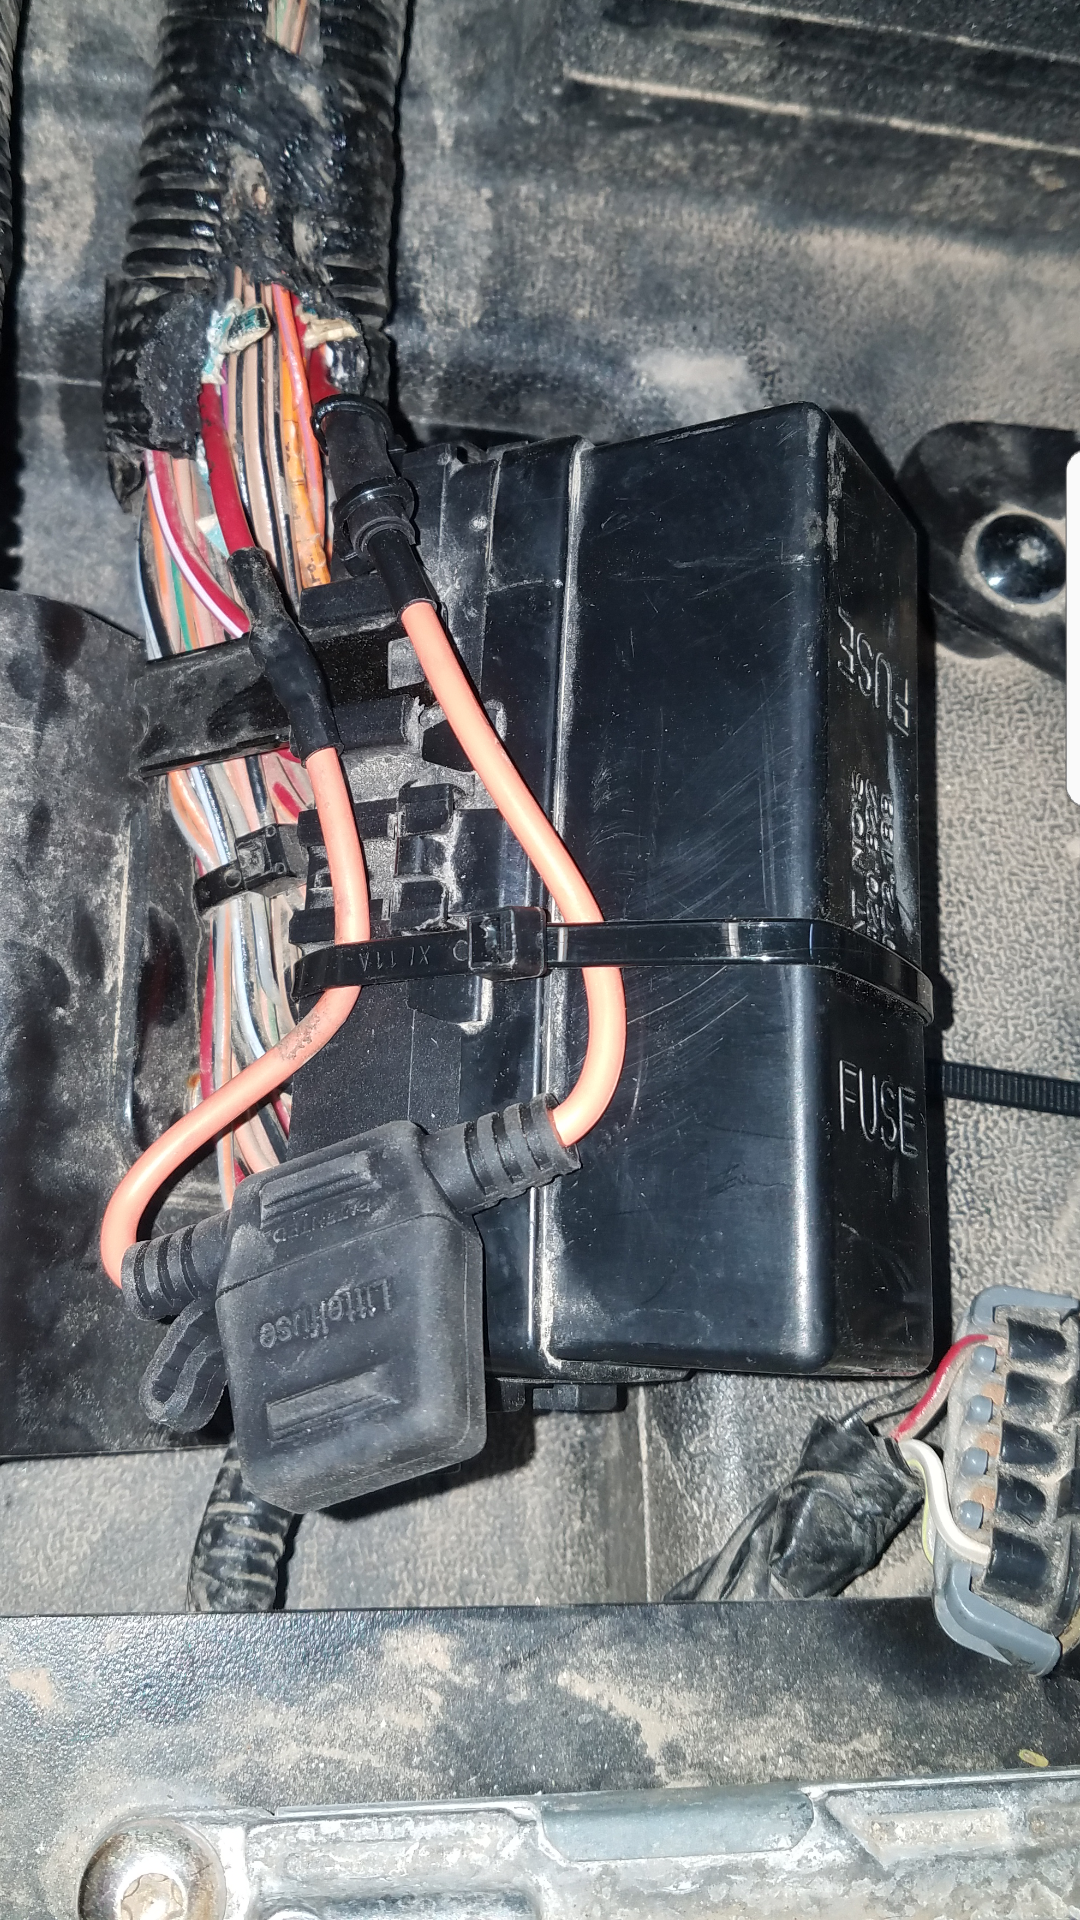 Galaxy Fuse Box Melted : Melted fuse box